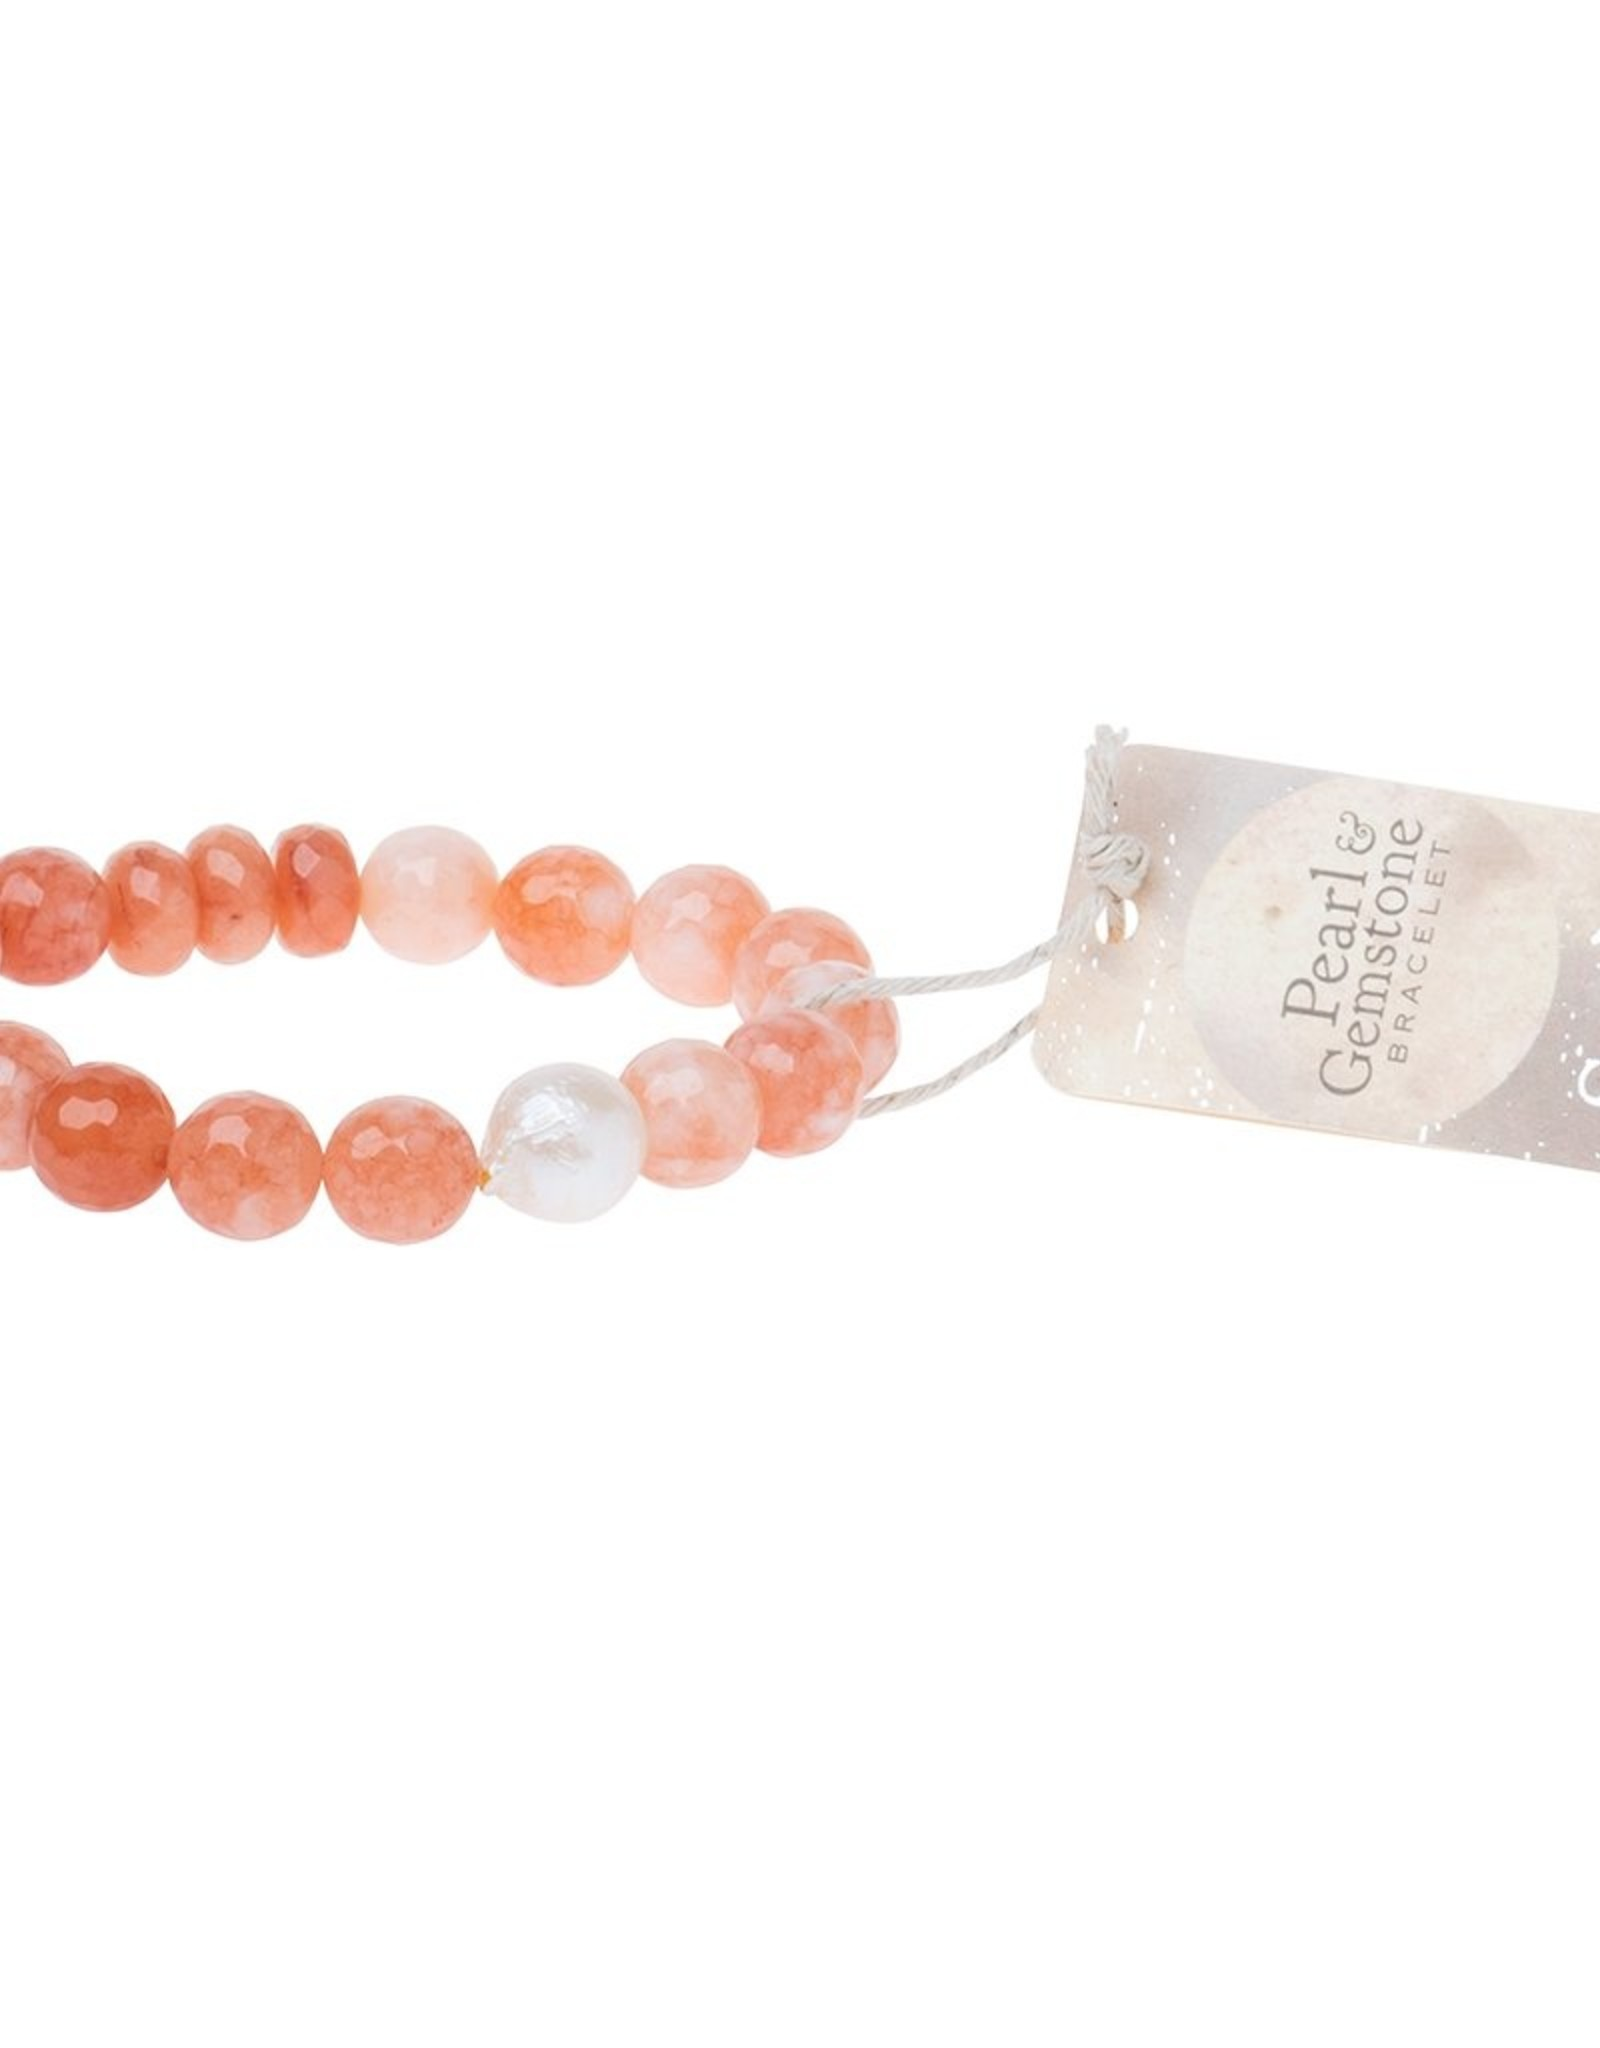 Scout Curated Wears Scout Curated Wears - Pearl & Gemstone Bracelet